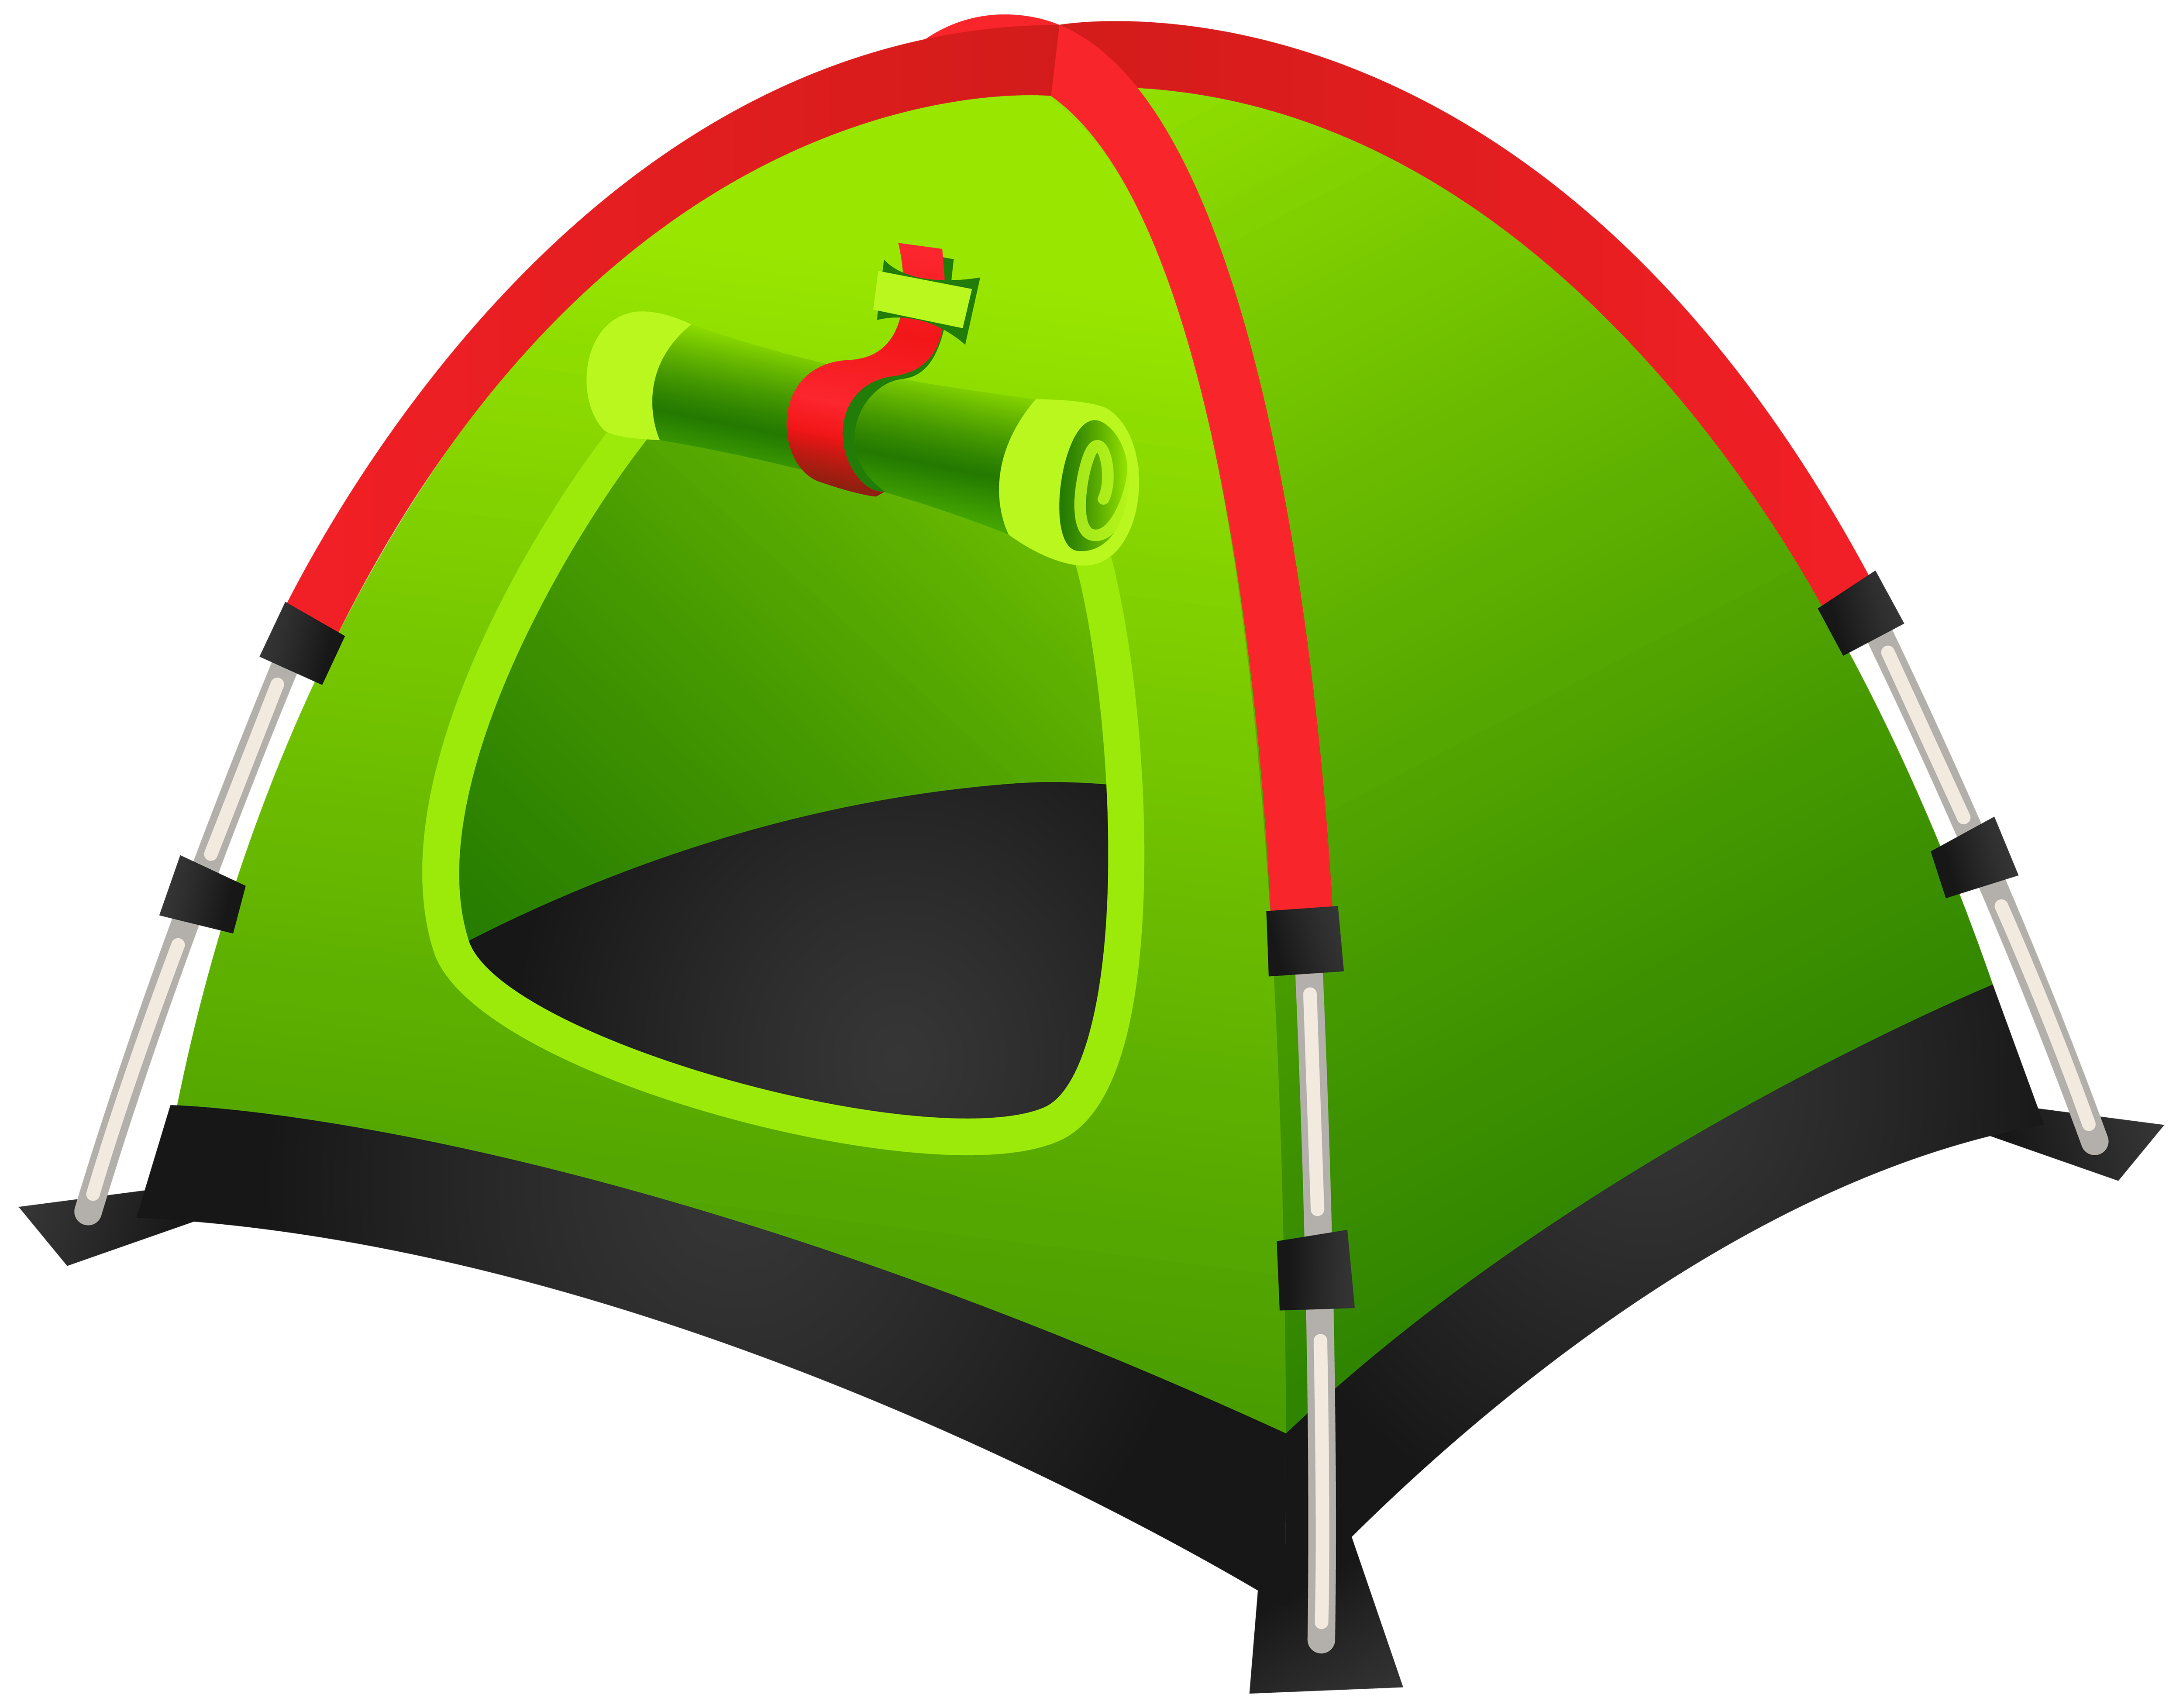 Tourist Green Tent PNG Clipart Image